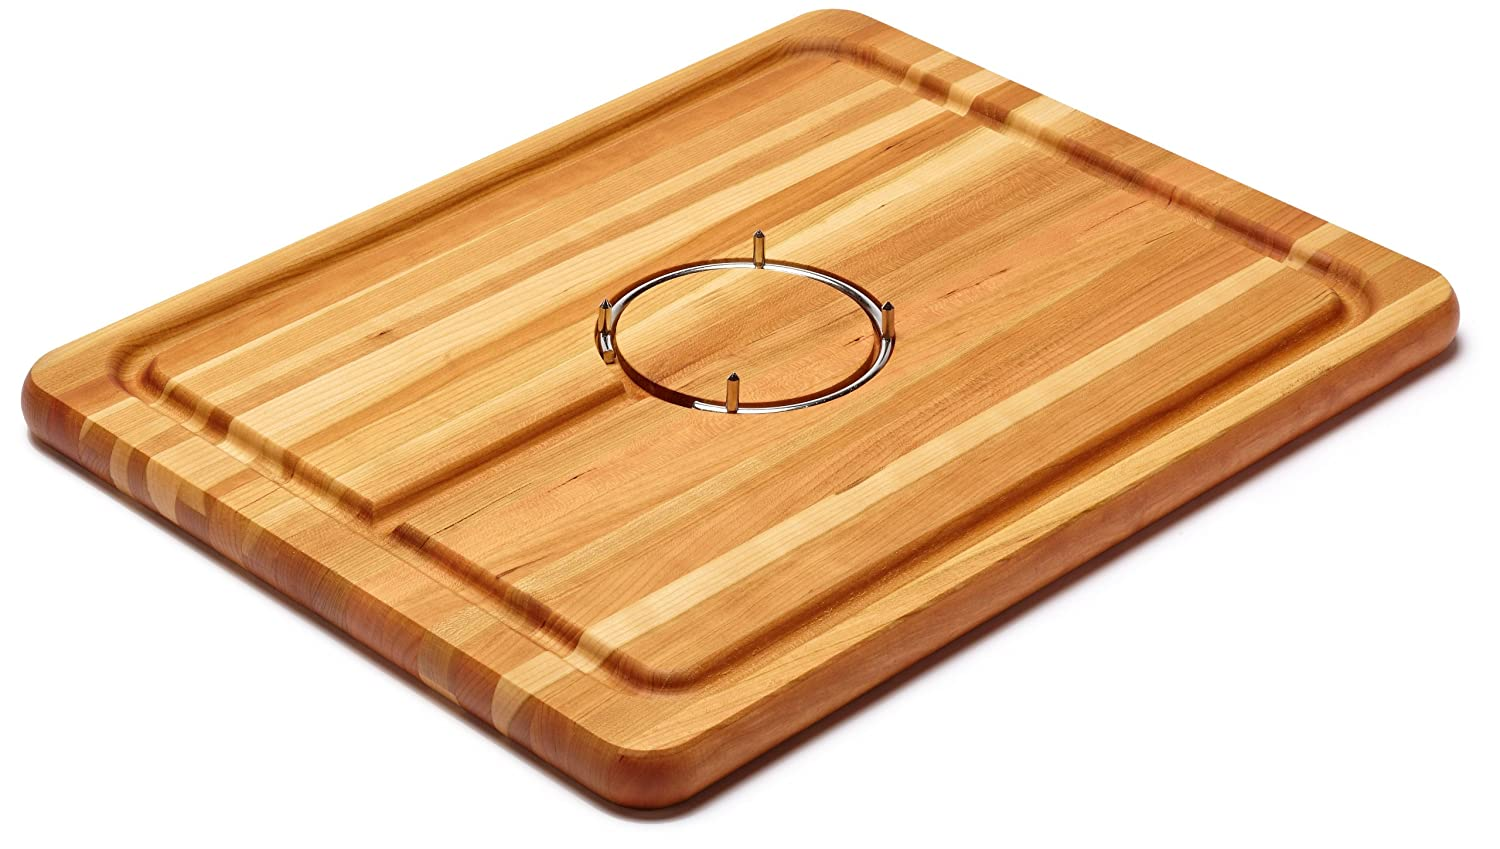 Snow River Cherry Carving Board with Stainless Steel Gripping Ring and Juice Well, 14-Inch by 18-Inch by 1-Inch 7V03084